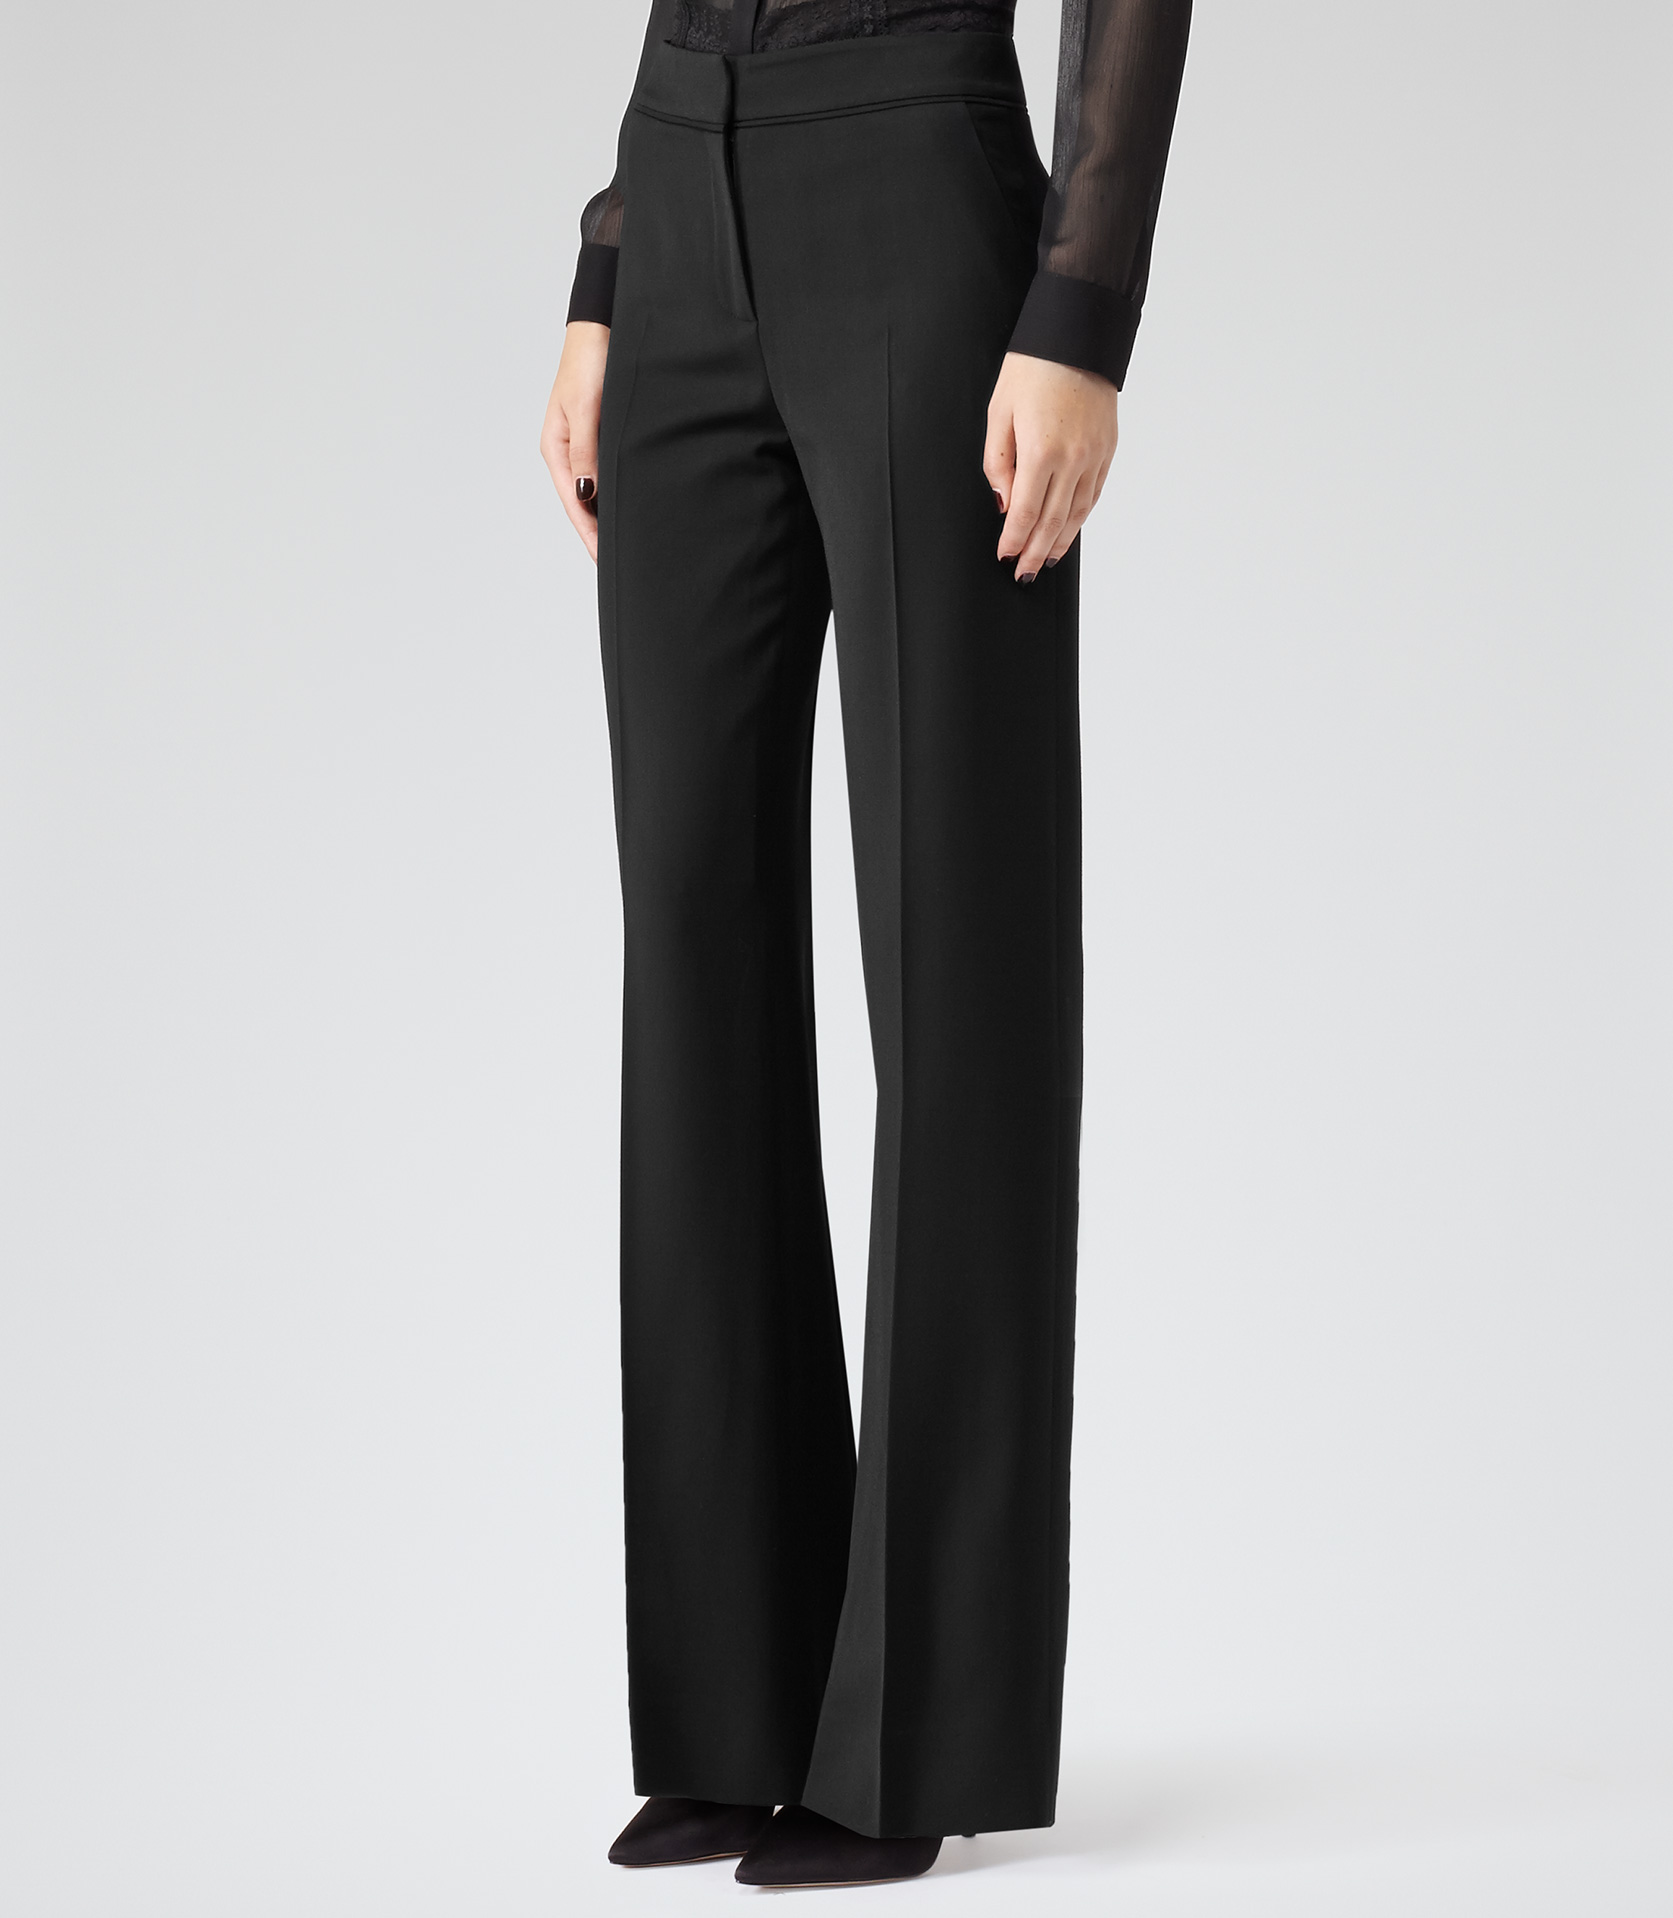 Nisa Black Wide-leg Tailored Trousers - REISS